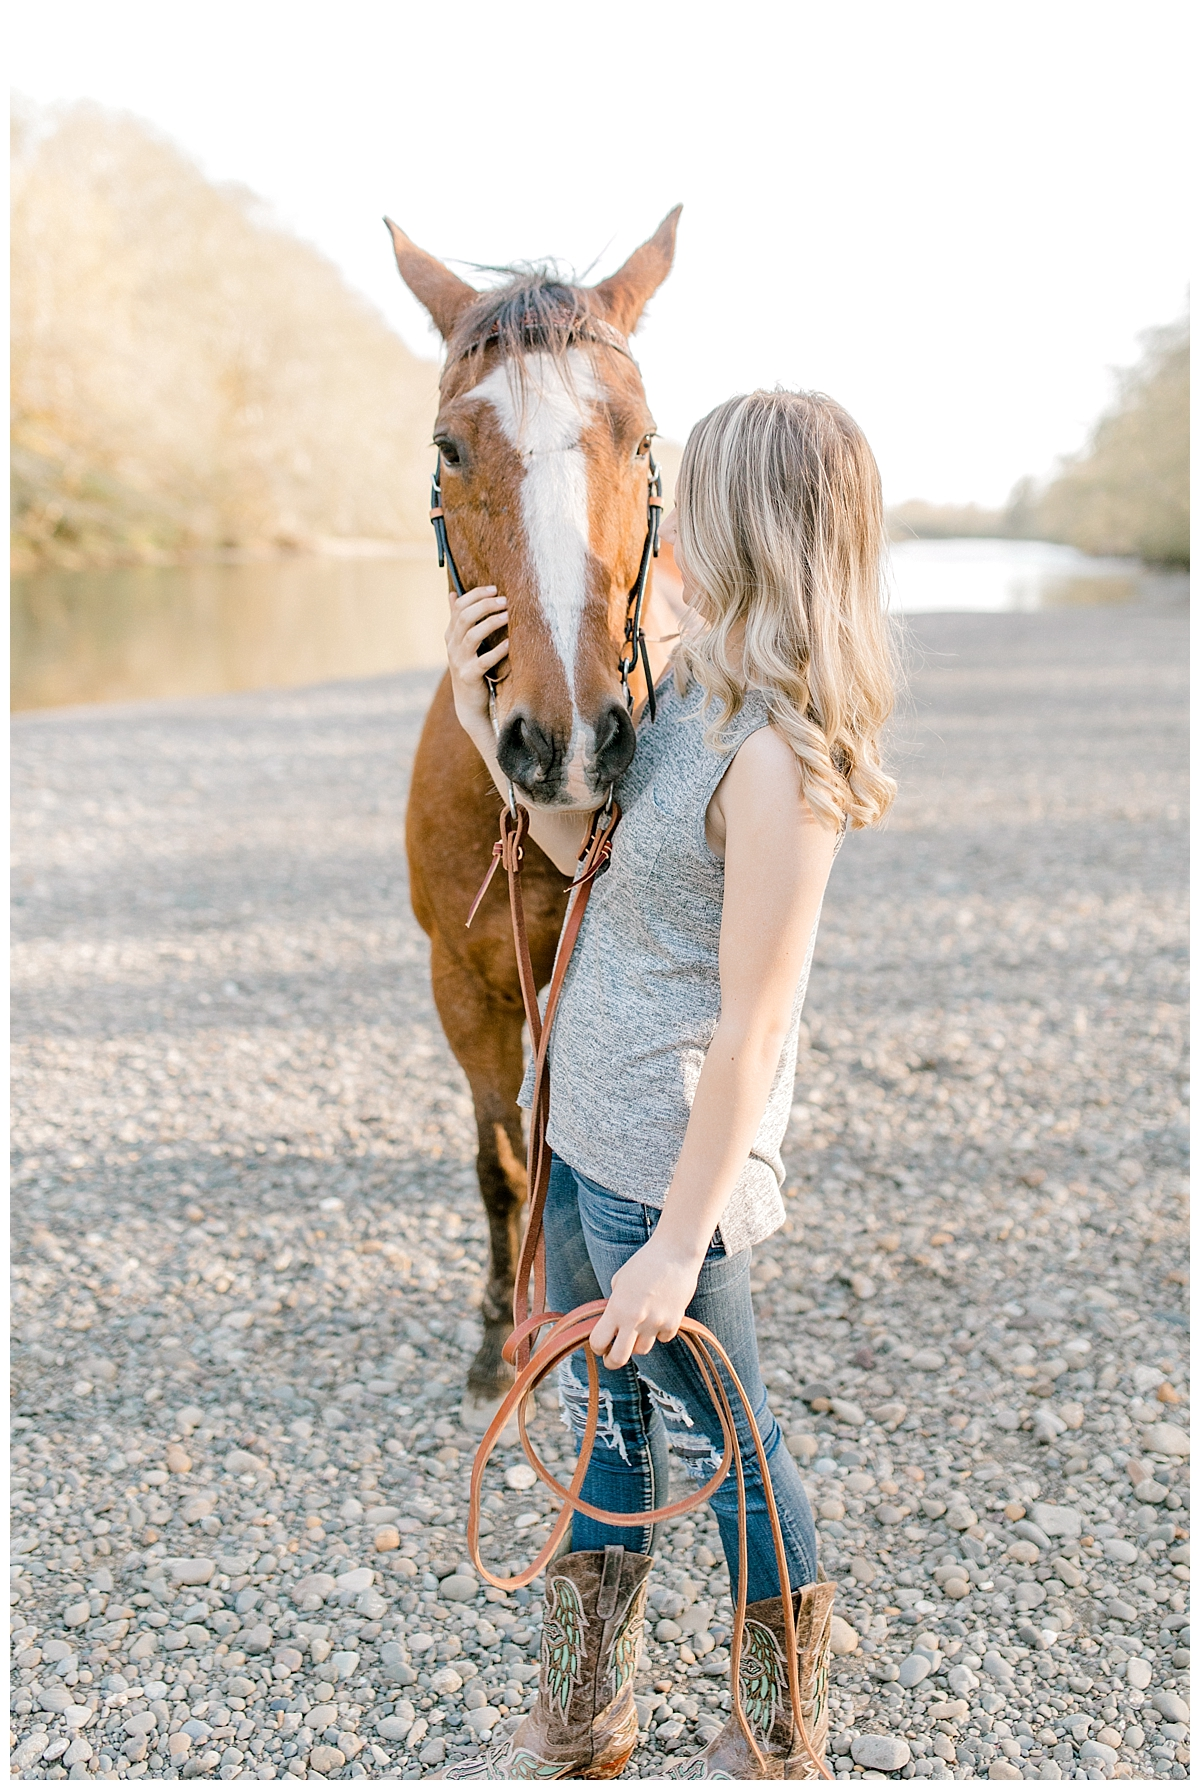 Sunset Senior Session with Horse | Senior Session Inspiration Session | Horse Photo Session | Pacific Northwest Light and Airy Wedding and Portrait Photographer | Emma Rose Company | Kindred Presets Riverside.jpg